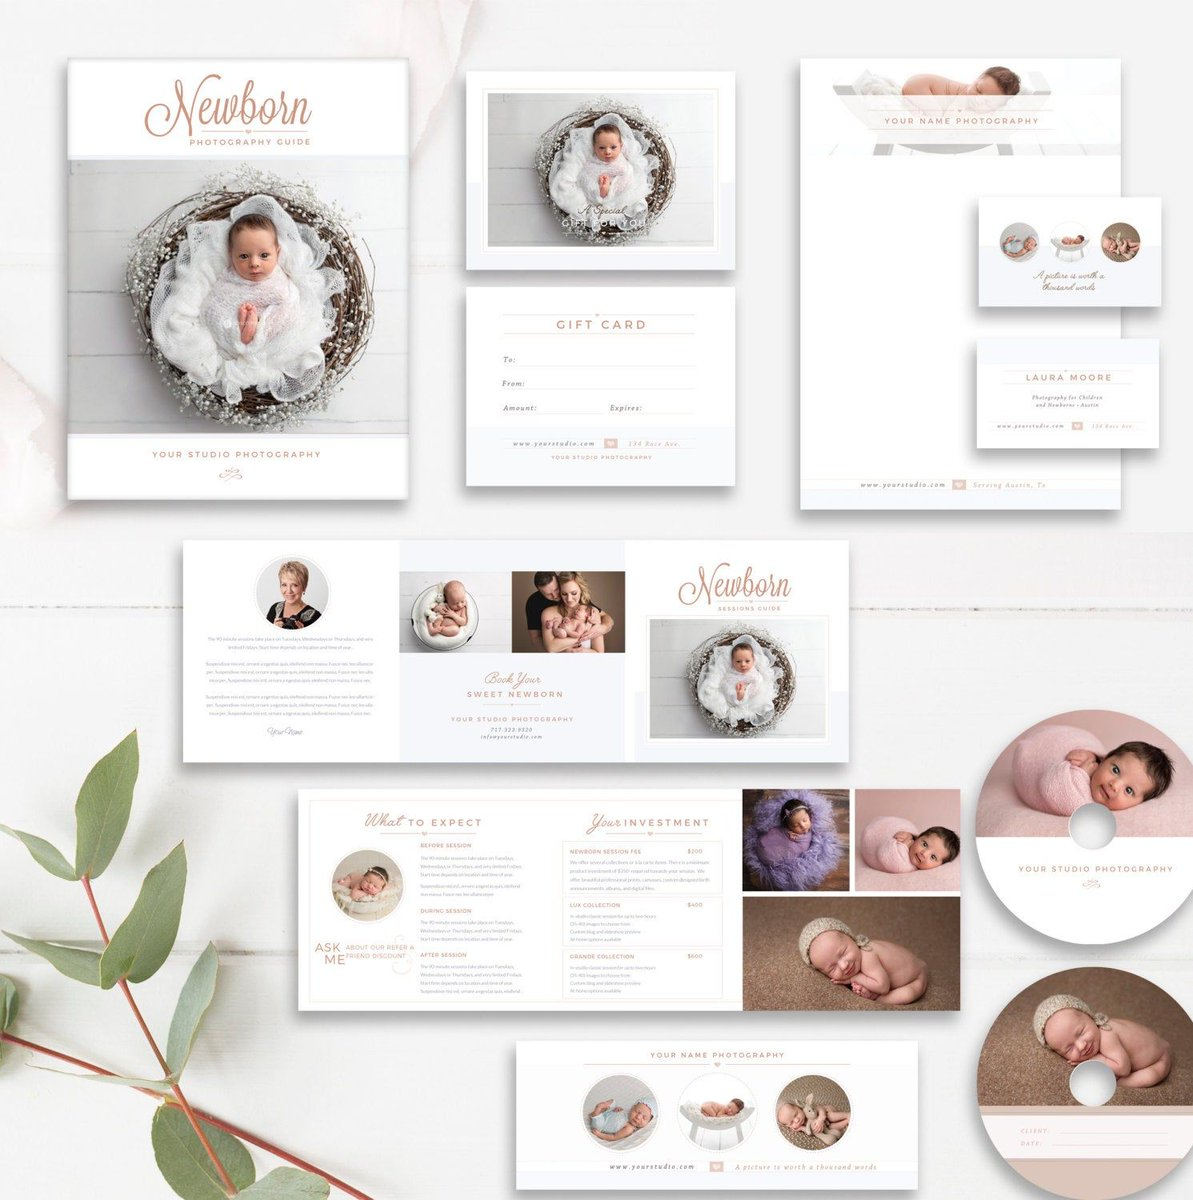 Make your photography business stand out and surprise your clients with a beautiful theme that's present in every point of interaction with this custom Marketing Set >> https://buff.ly/3126nbg  #photography #design #newbornphotography pic.twitter.com/tNjKqS4INE